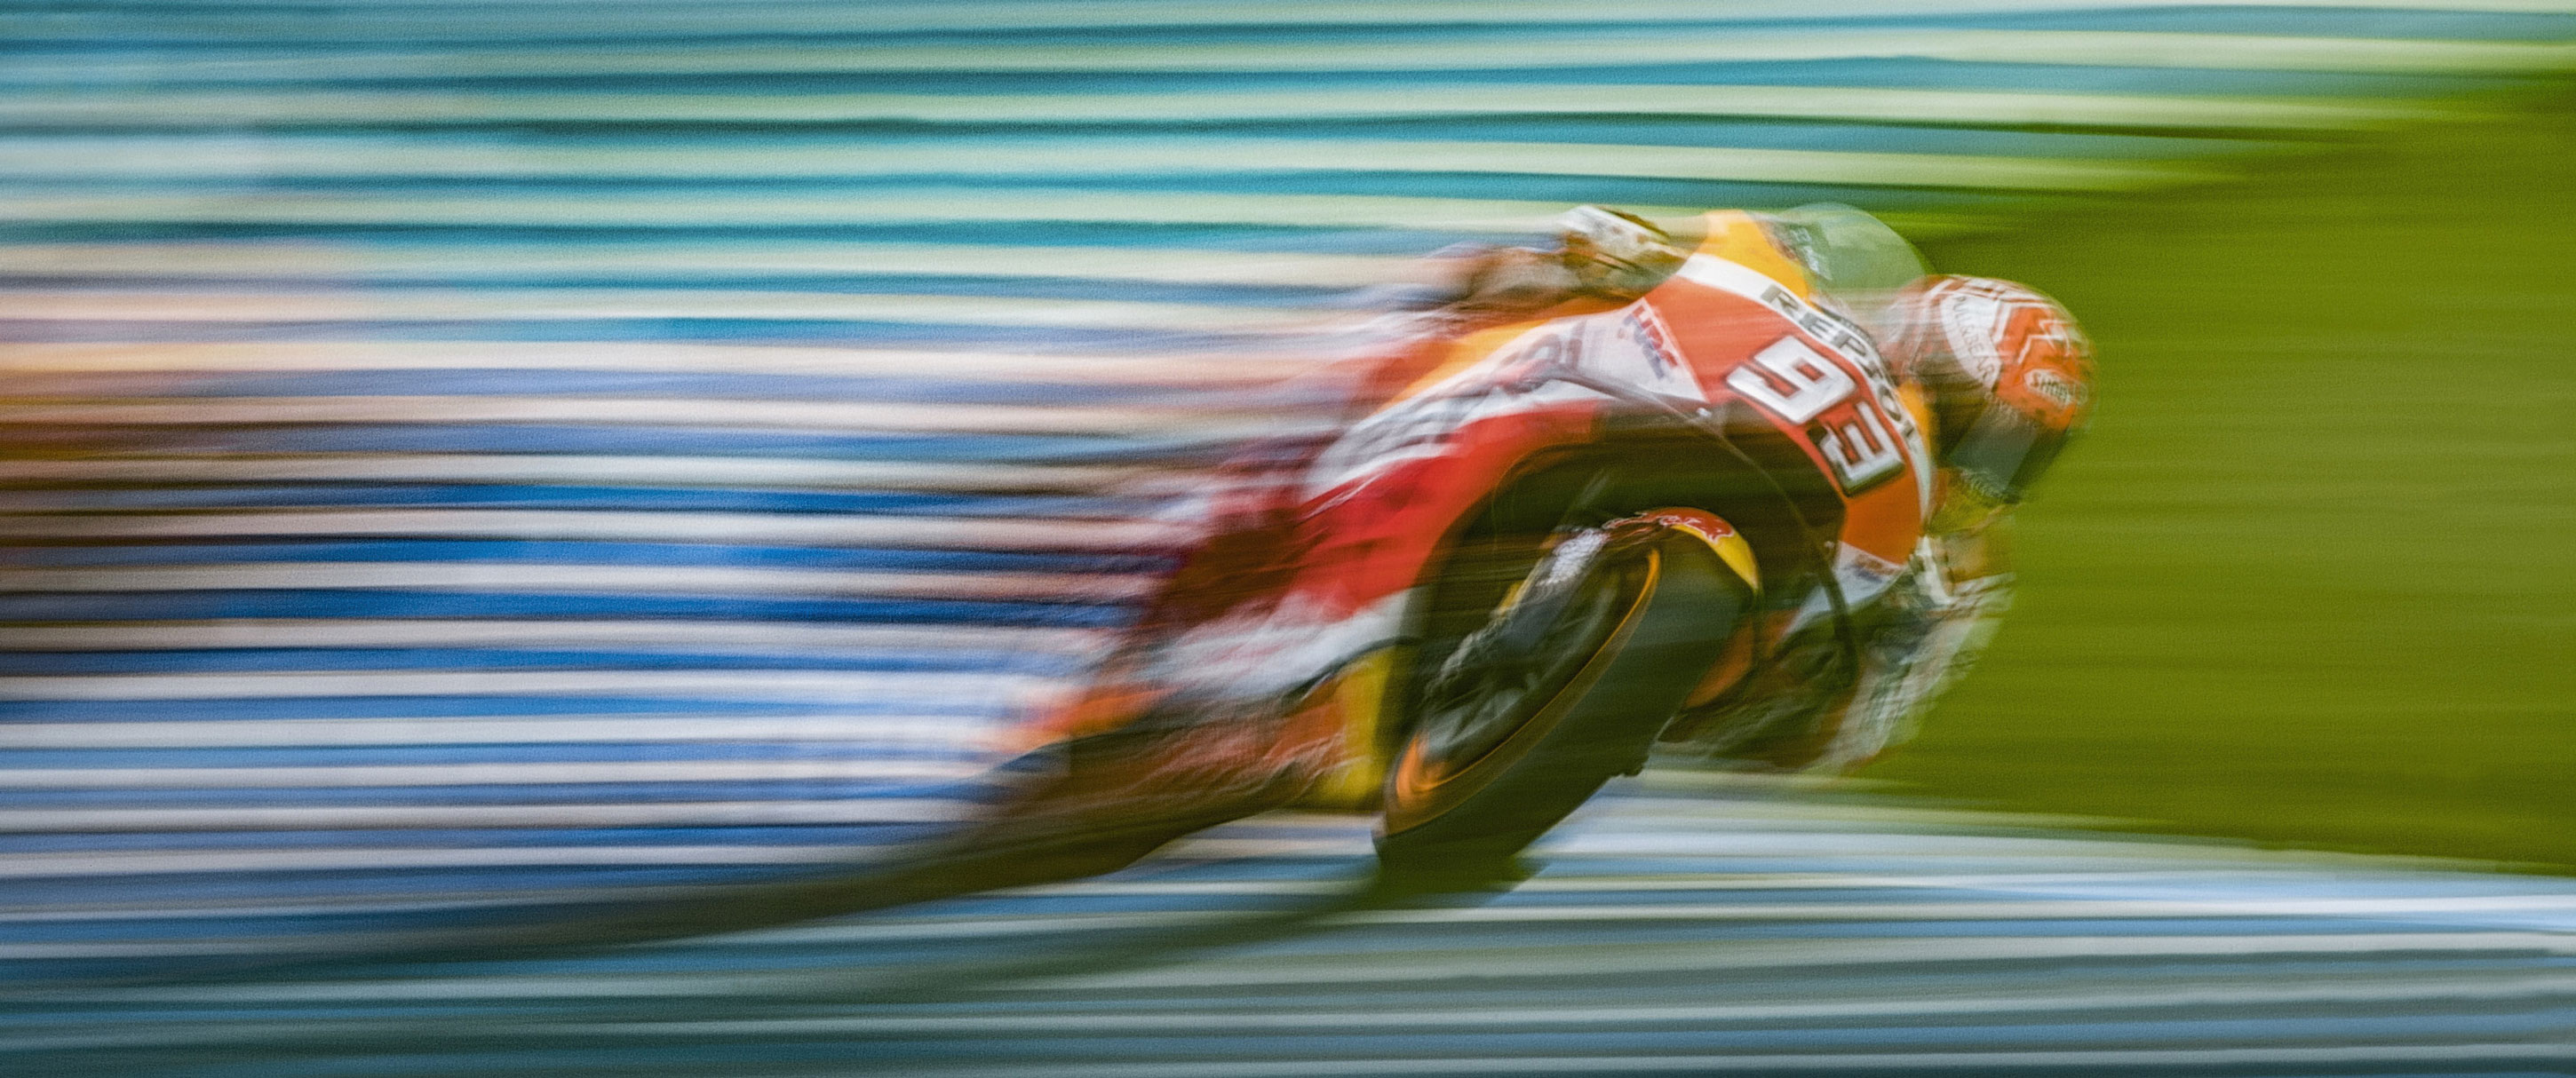 MotoGP sponsorship: what it is, how it works and all you need to know